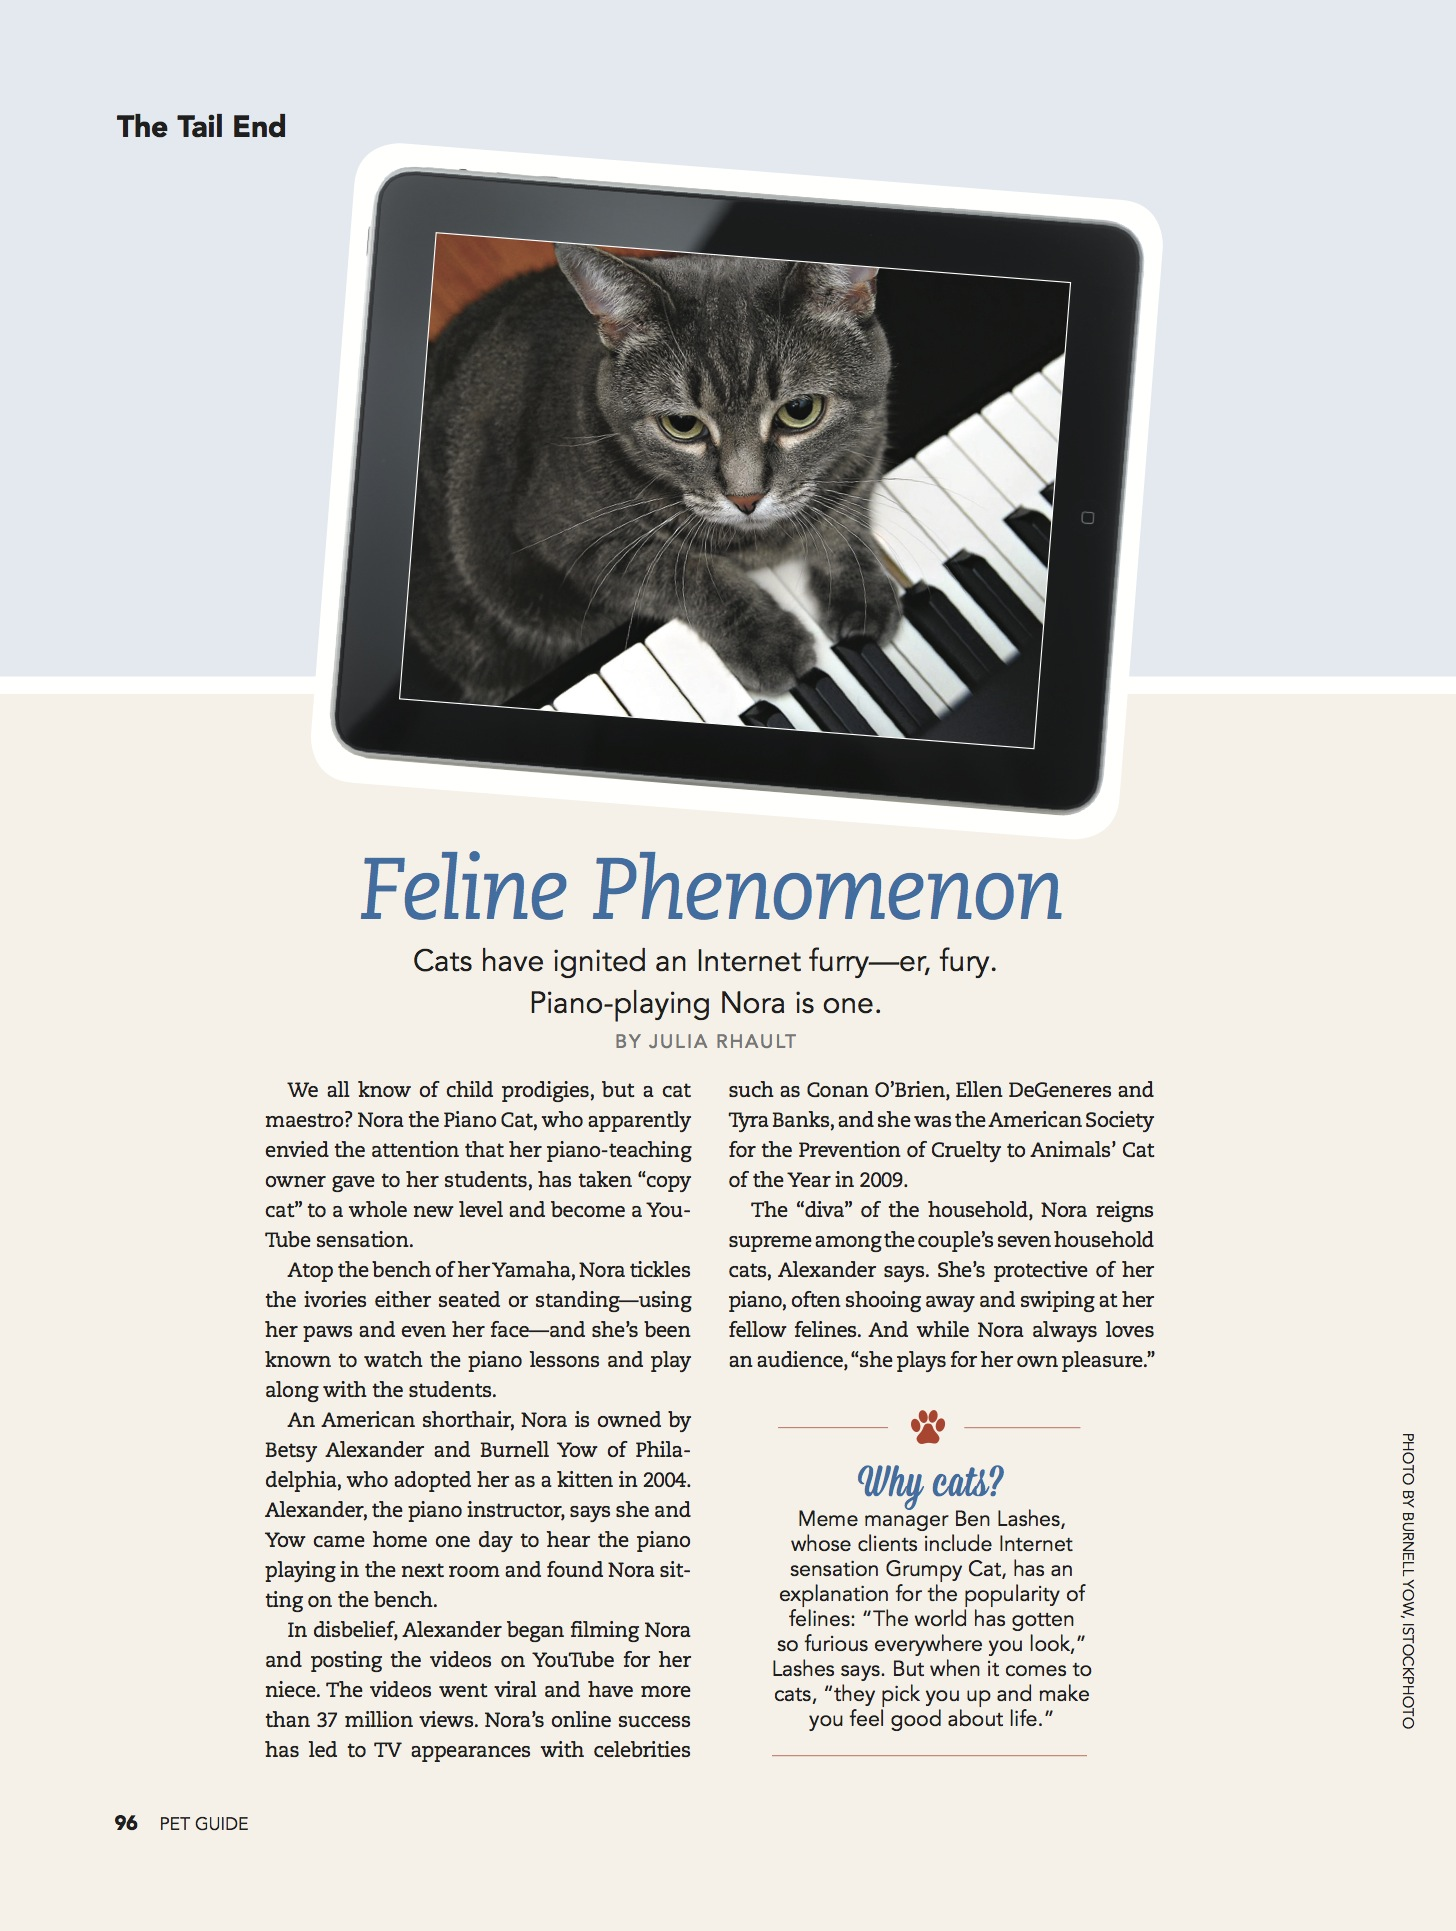 PET GUIDE_page96 Feline Phenomenon